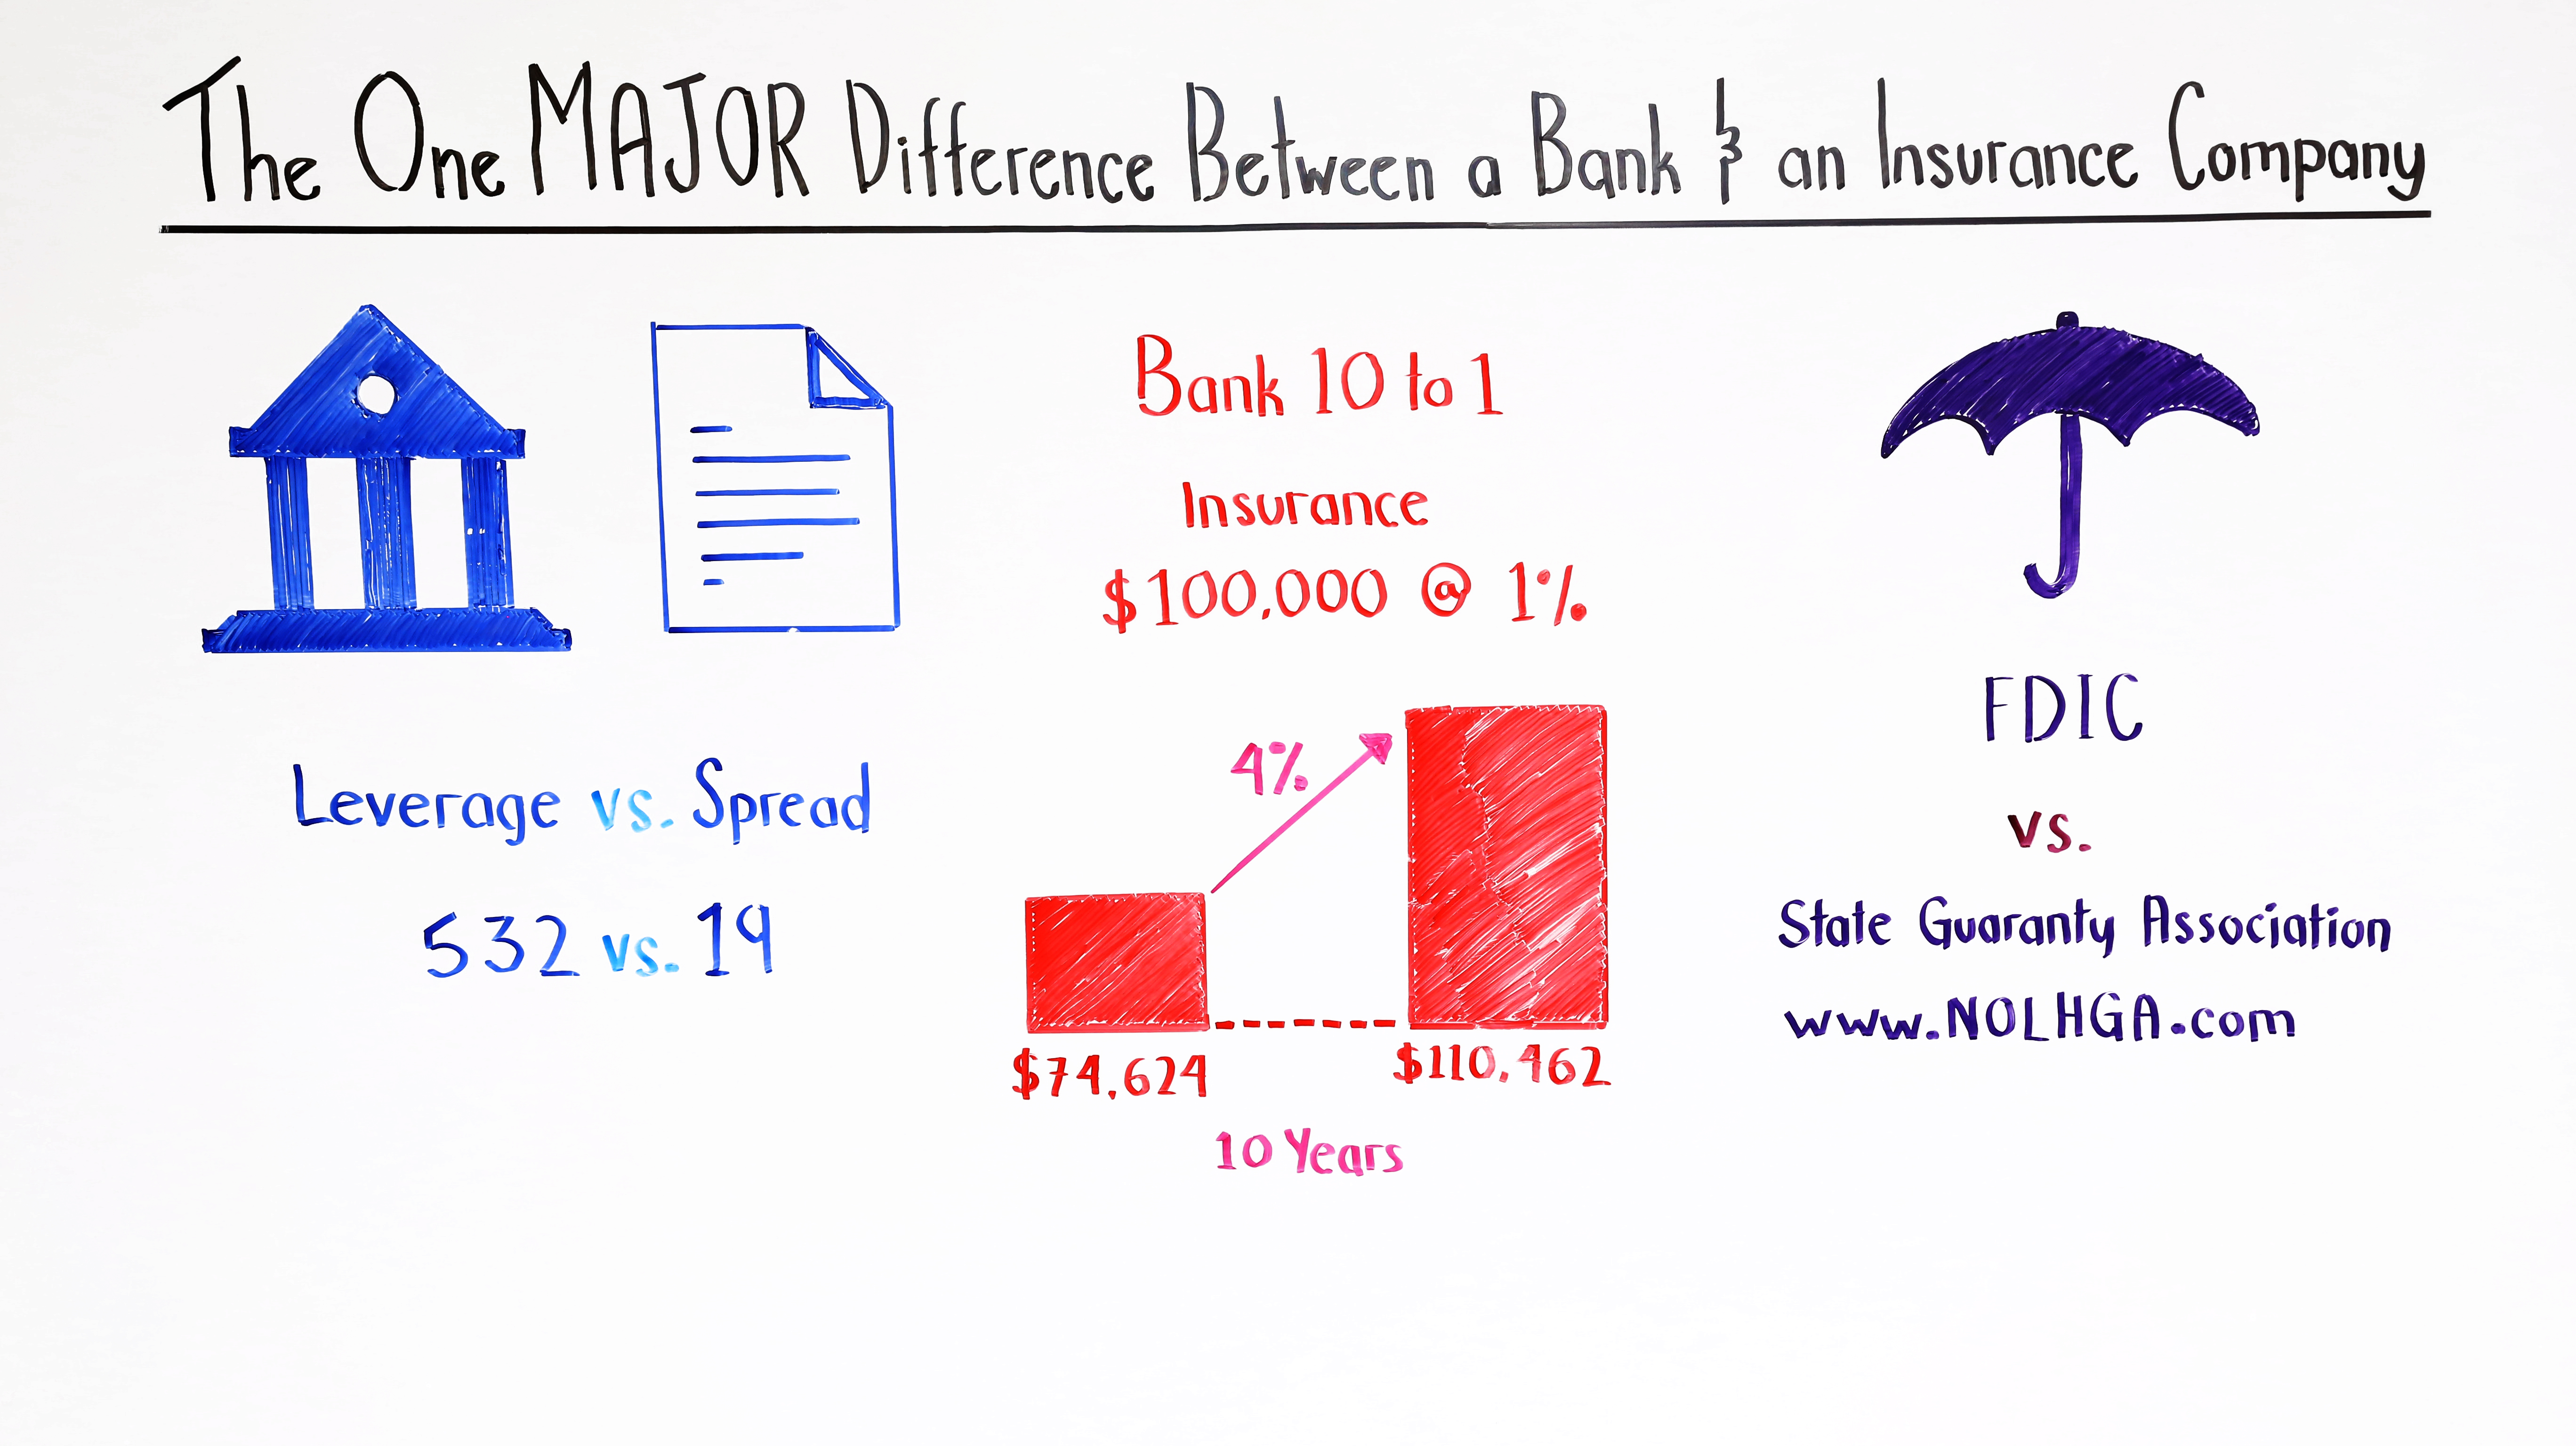 the one major difference between a bank and an insurance company